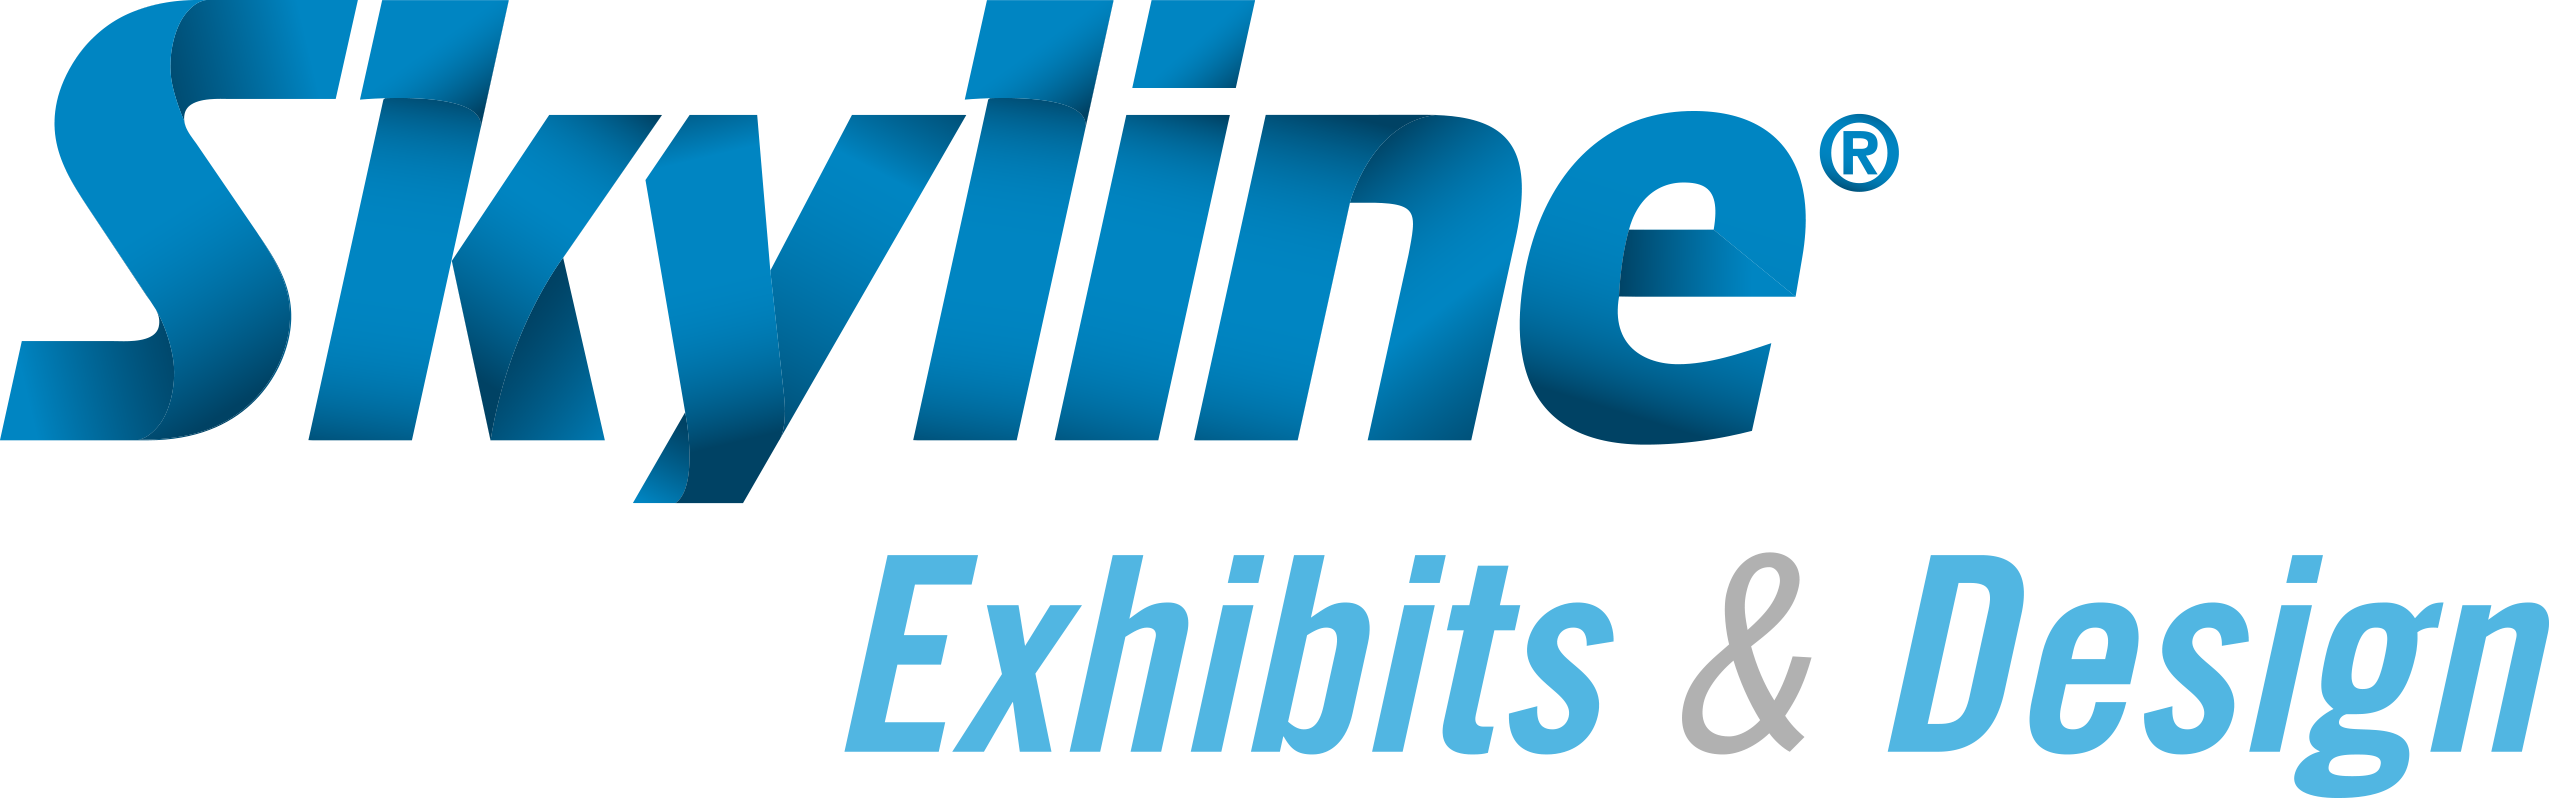 Booth Design - Skyline Exhibits and Design